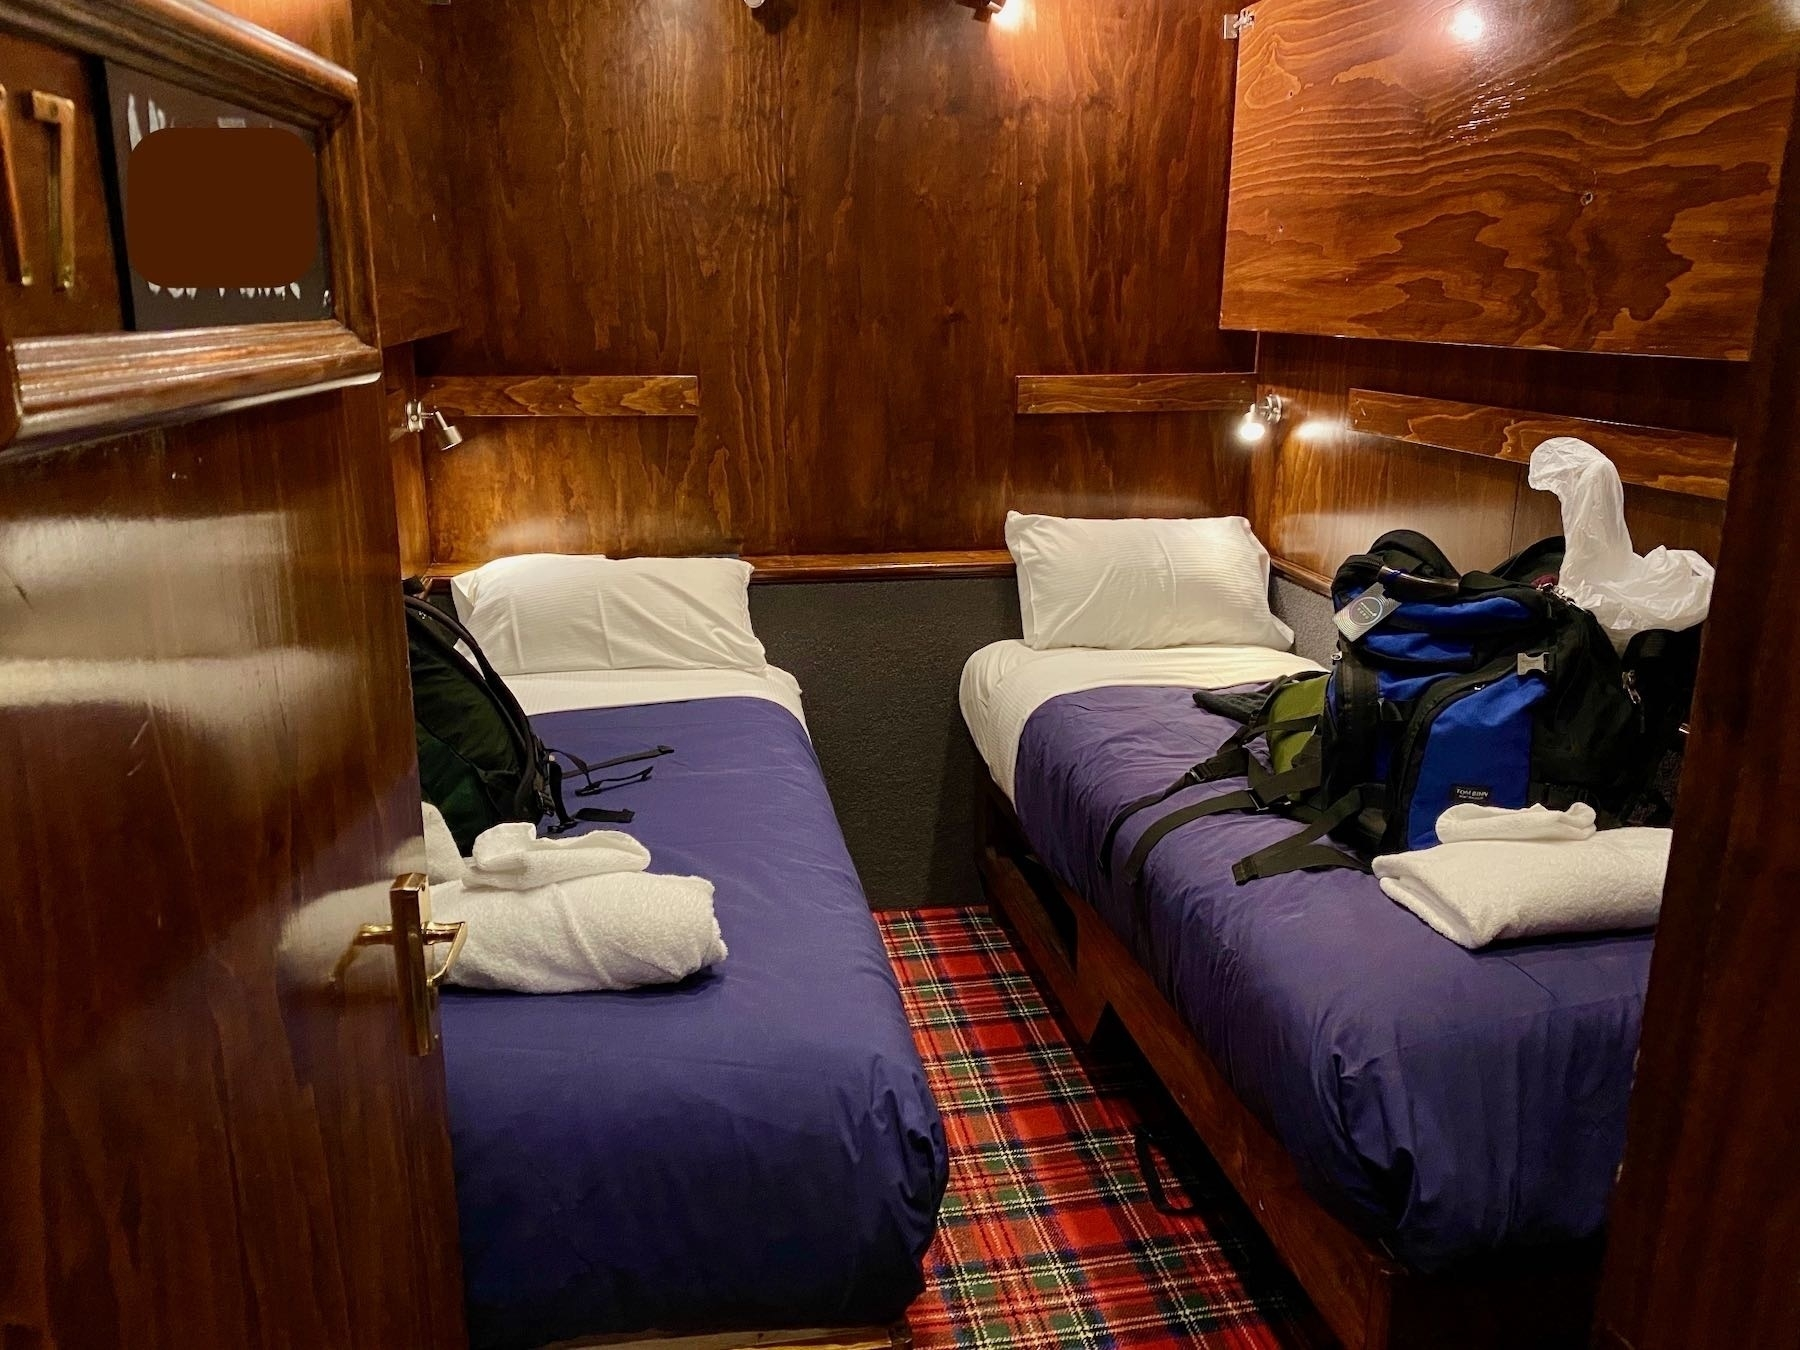 Cabin with two bunks.